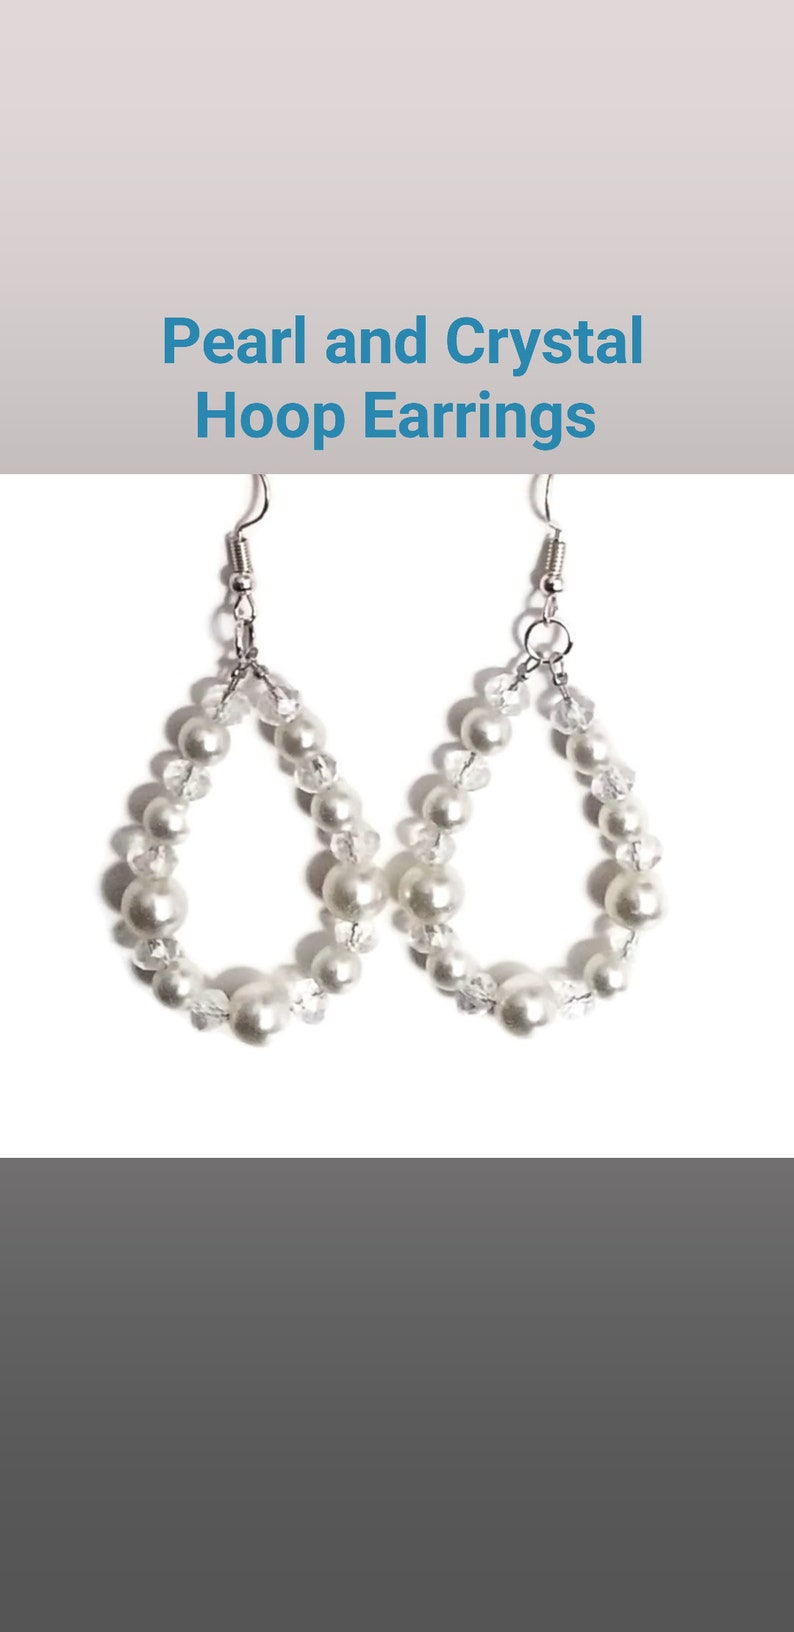 Pearl and Crystal Hoop Earrings Clipon Available Gift for Her Silver Handmade Jewelry